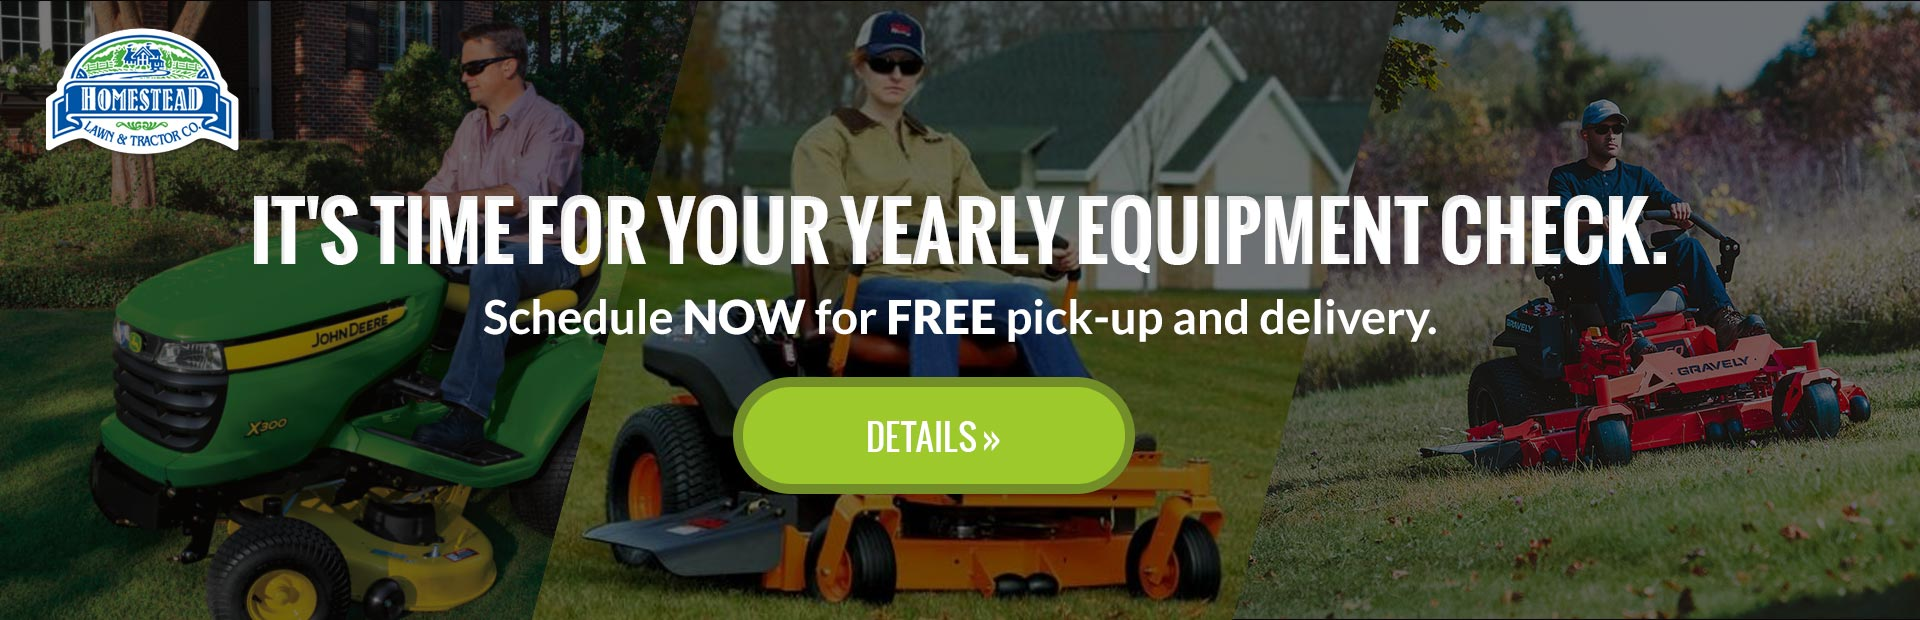 It's time for your yearly equipment check. Schedule now for free pick-up and delivery.